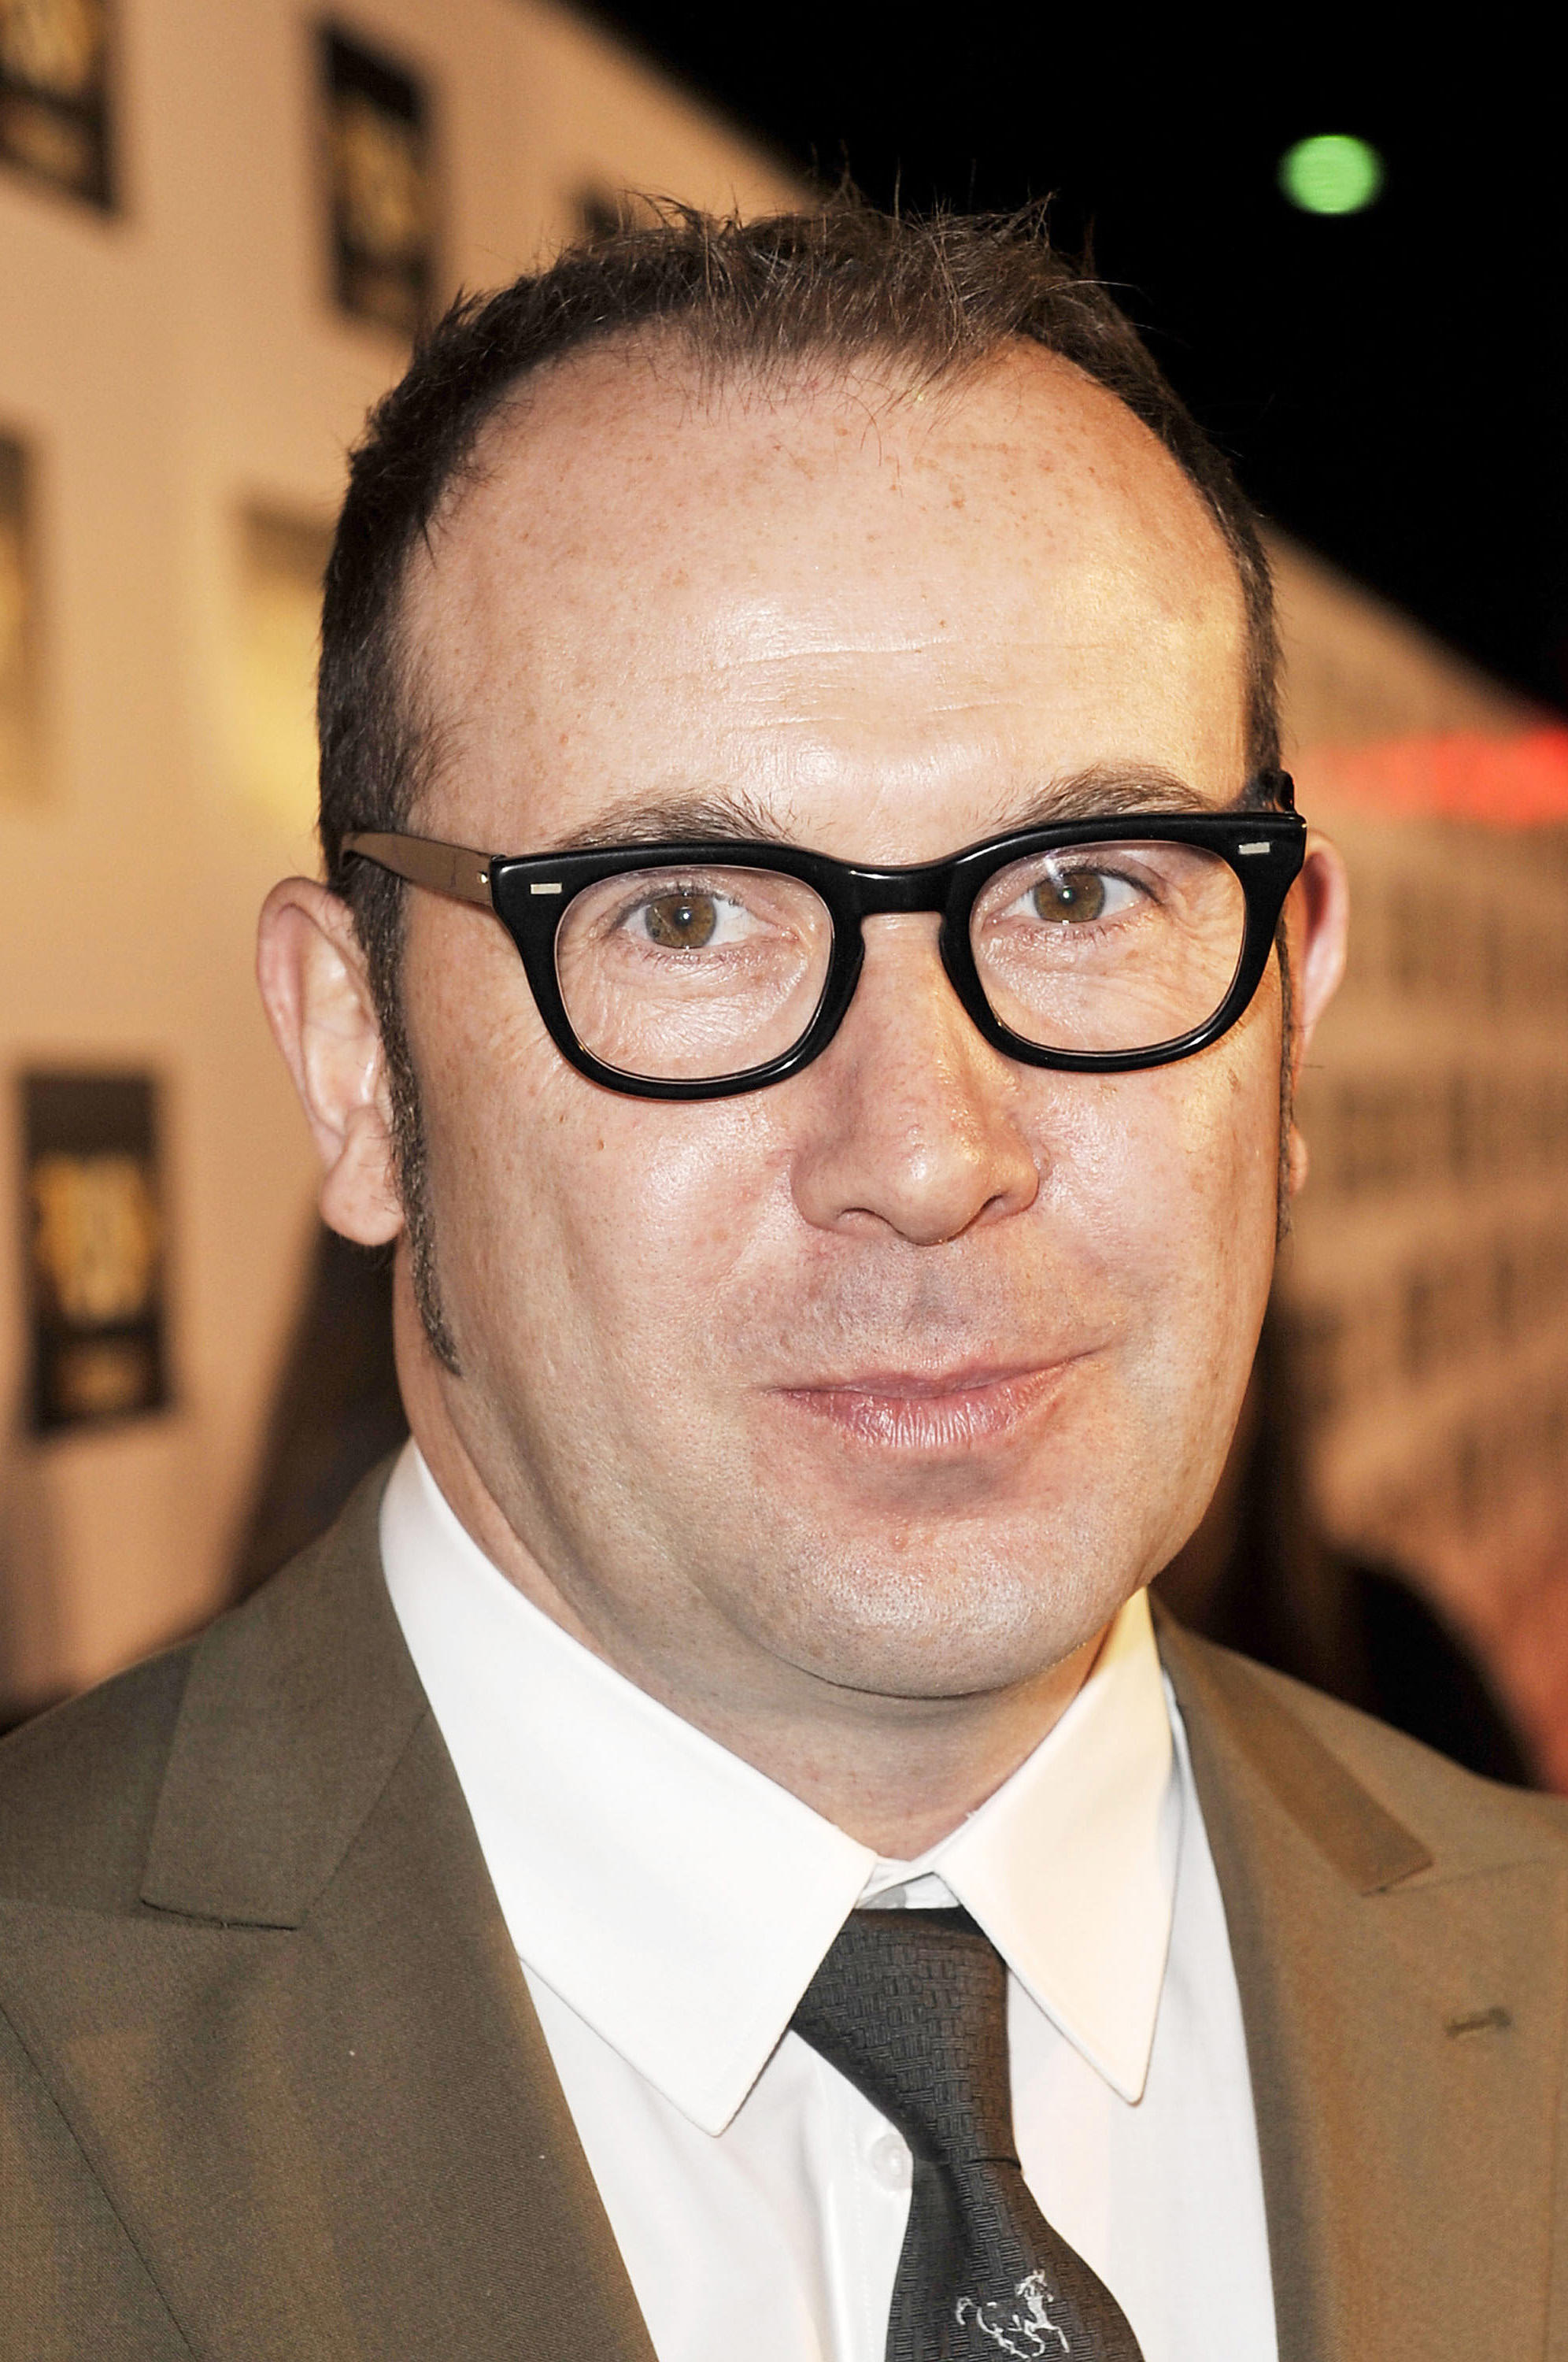 Paul McGuigan at the premiere of Summit Entertainment's 'Push' at the Mann Village Theater.